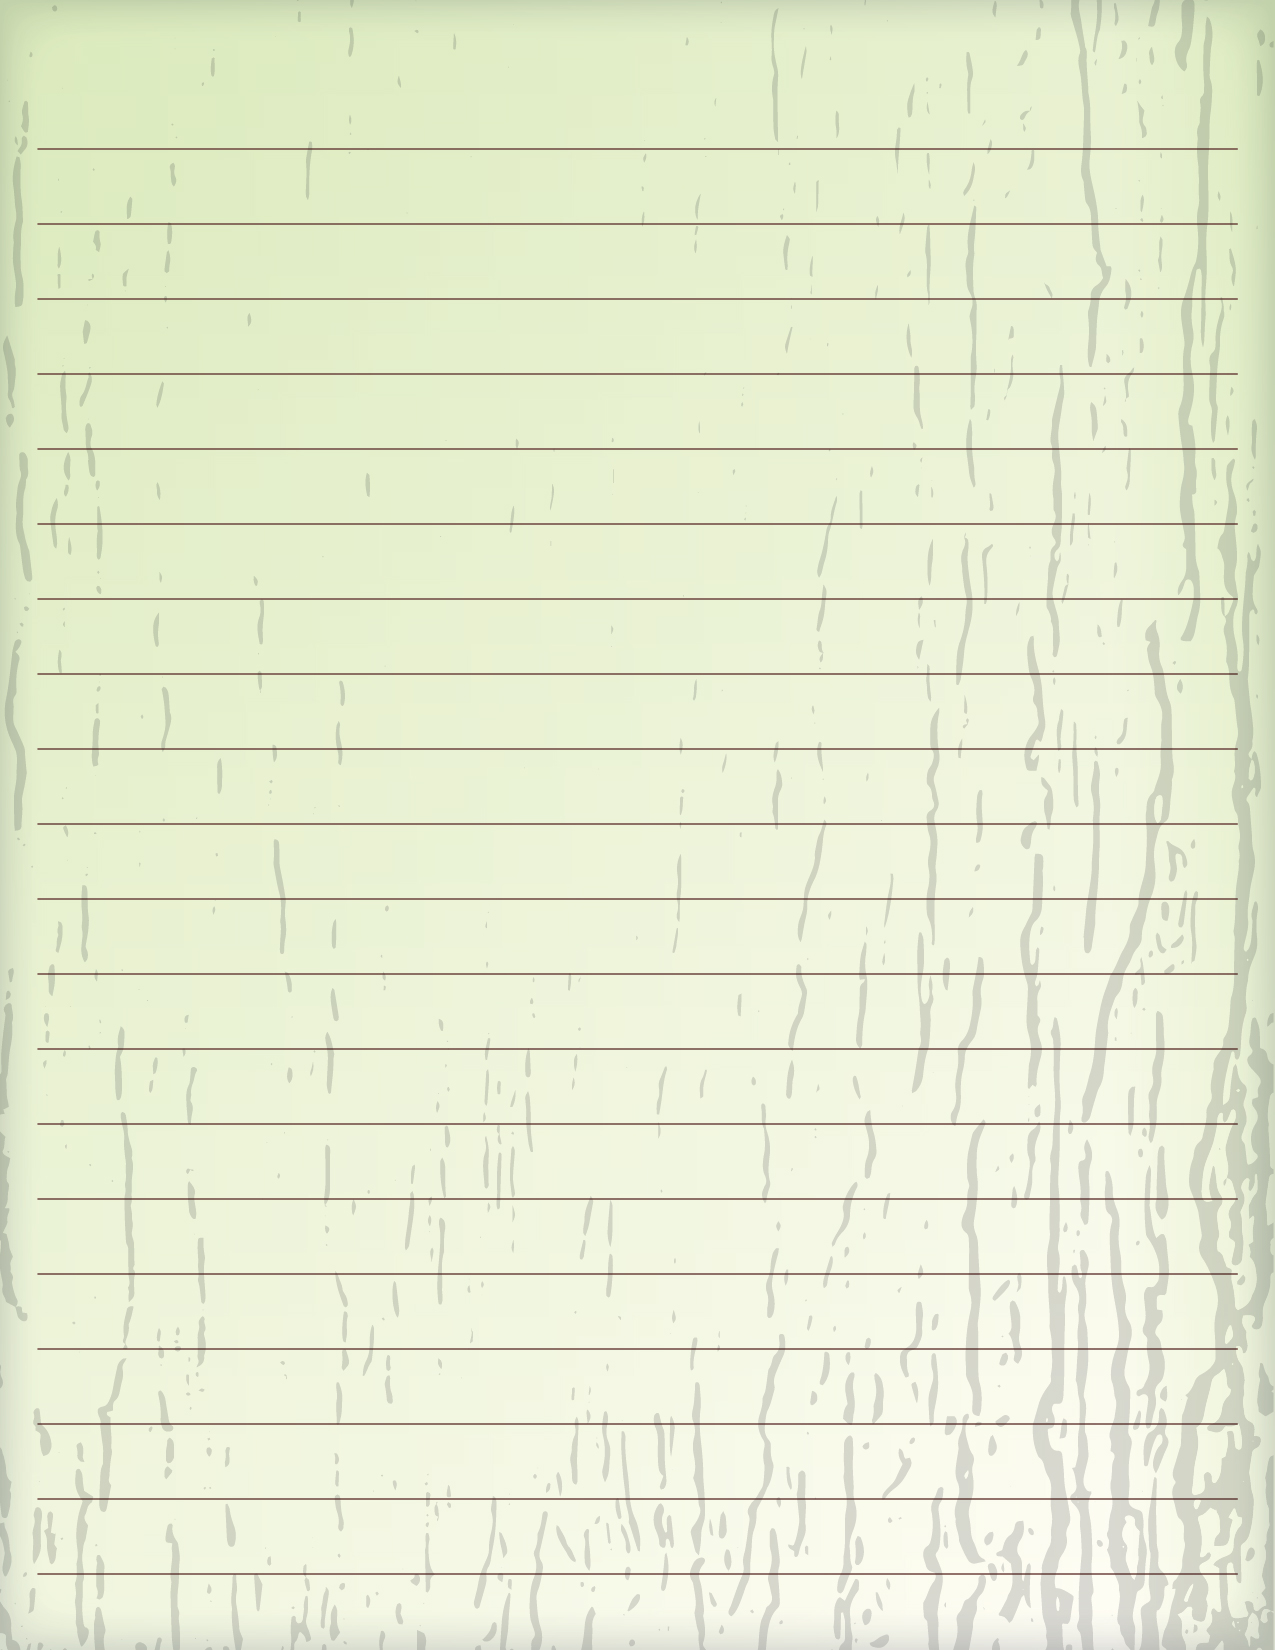 Printable Handwriting Paper Templates With Lines